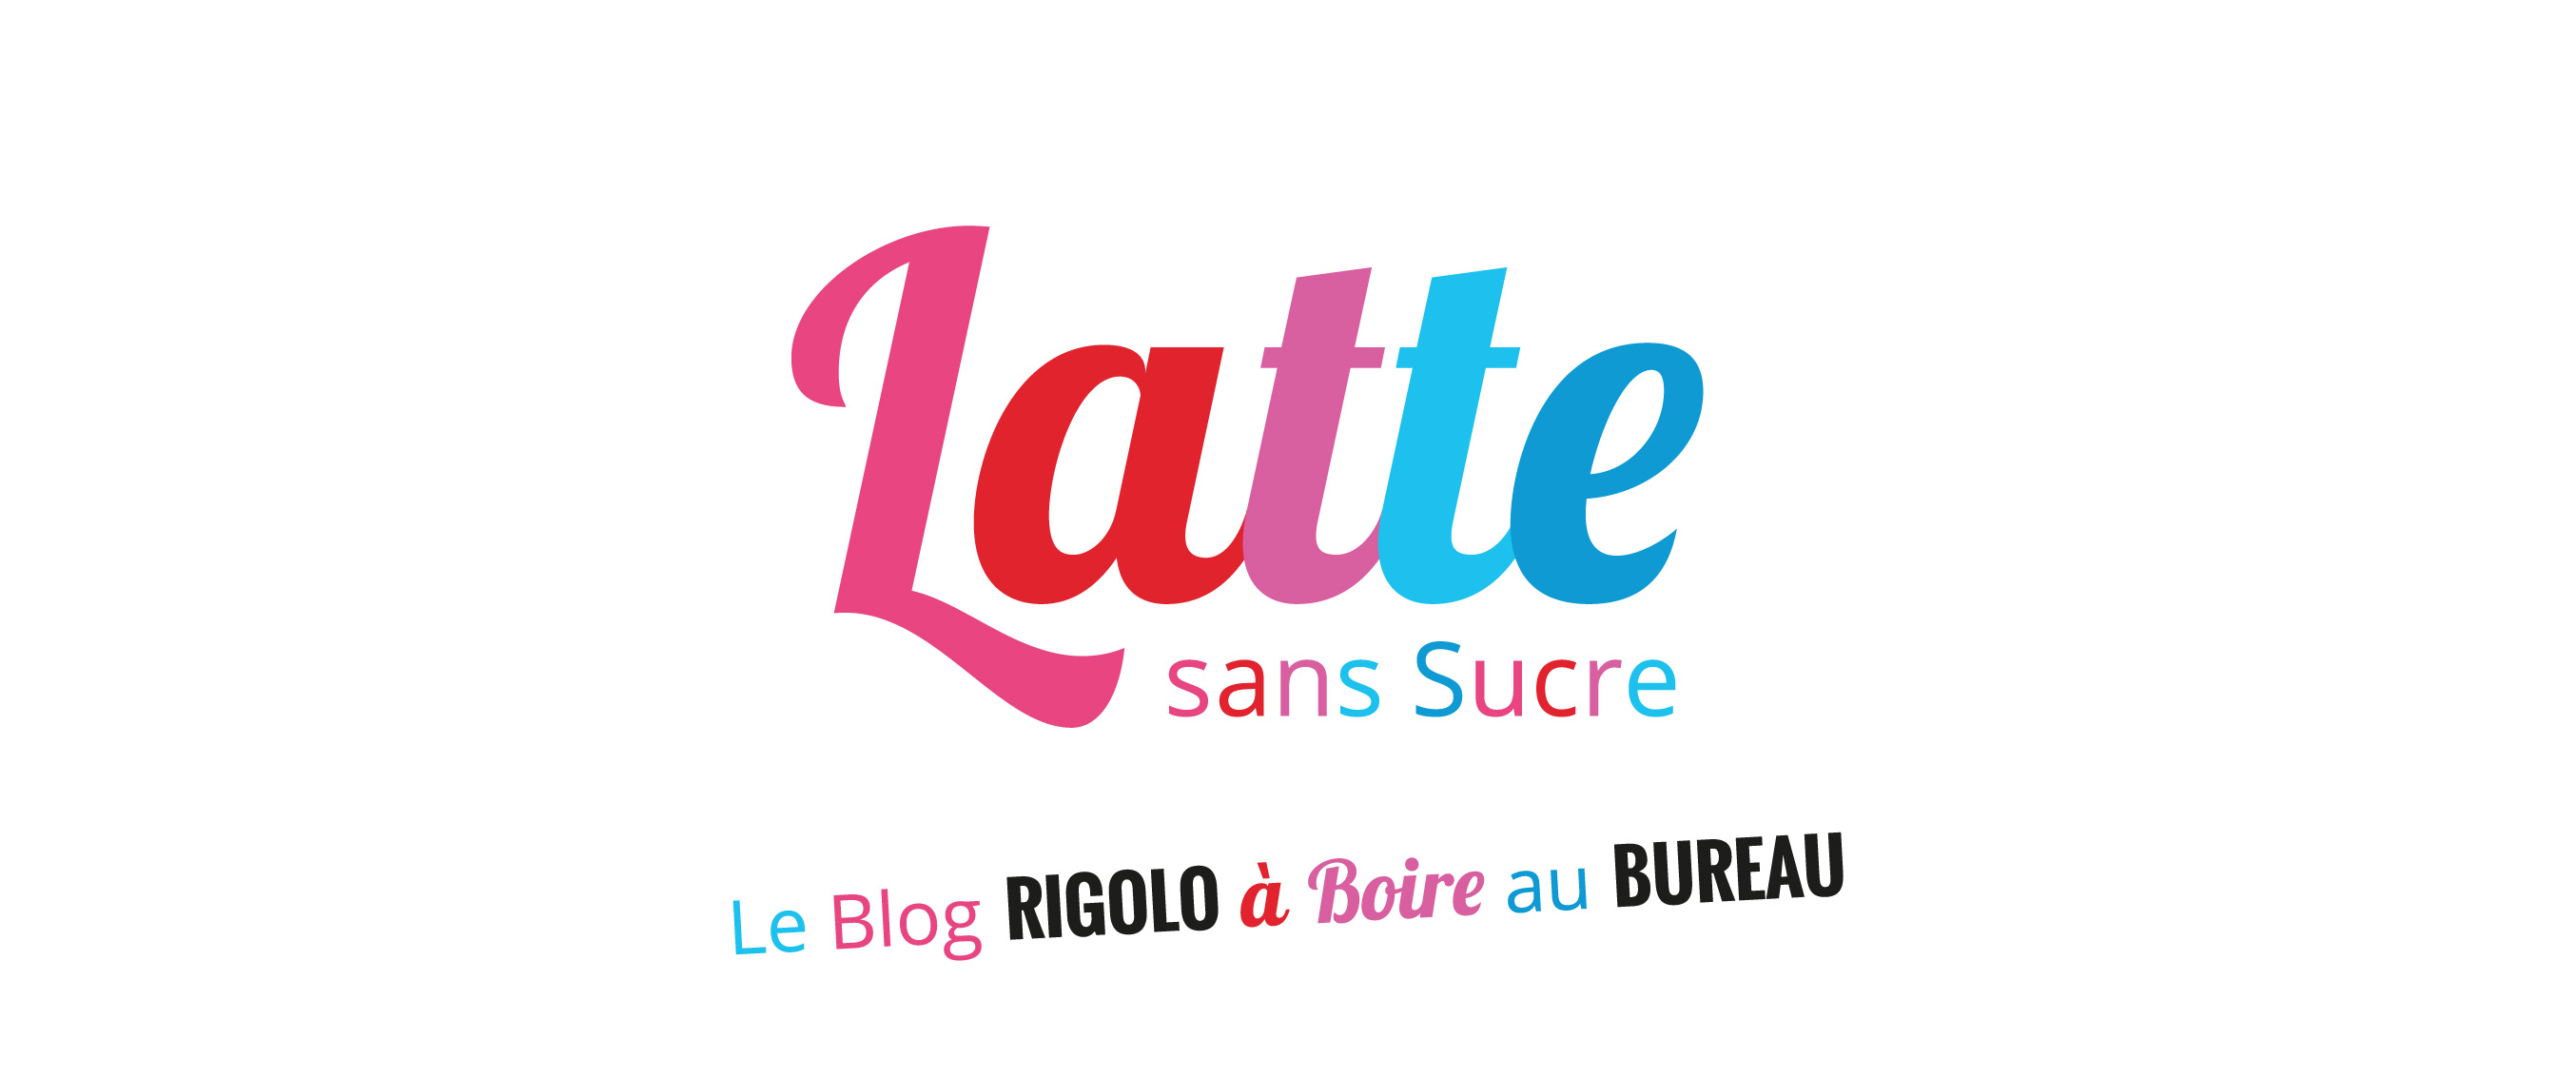 latte sans sucre blog humour sur la vie et les coll gues de bureau. Black Bedroom Furniture Sets. Home Design Ideas